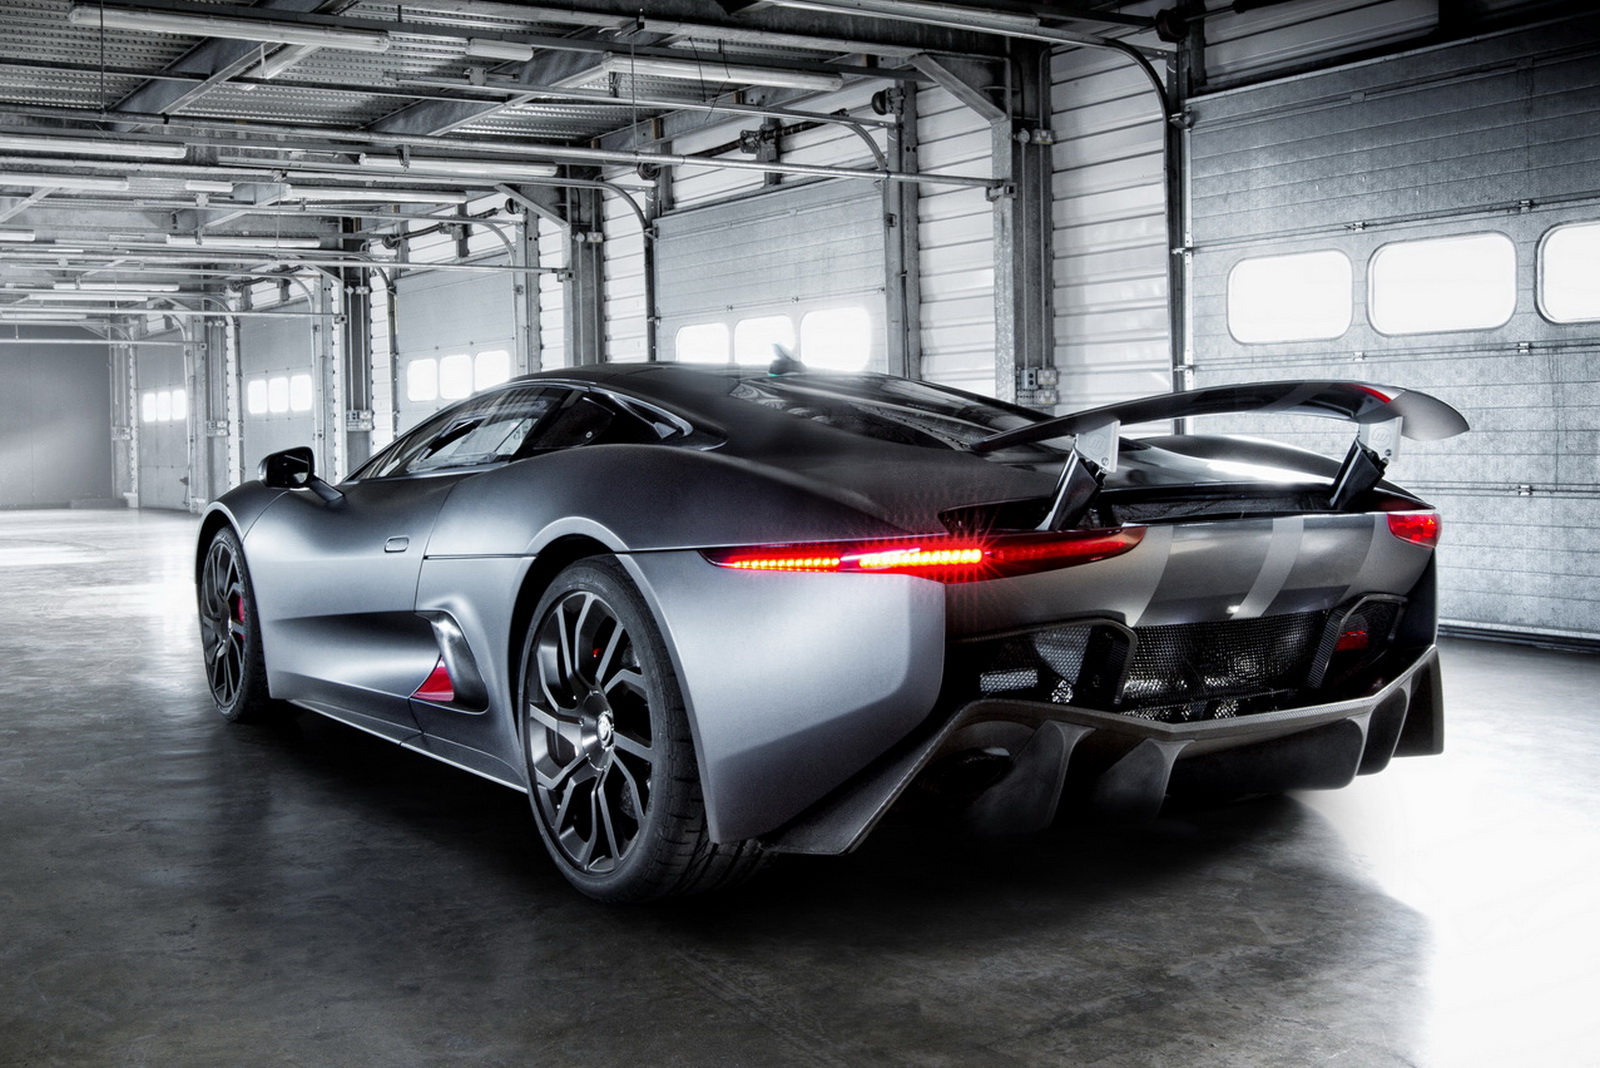 X75 Supercar Could Return As F-Type Successor, Mid-Engined Layout Possible